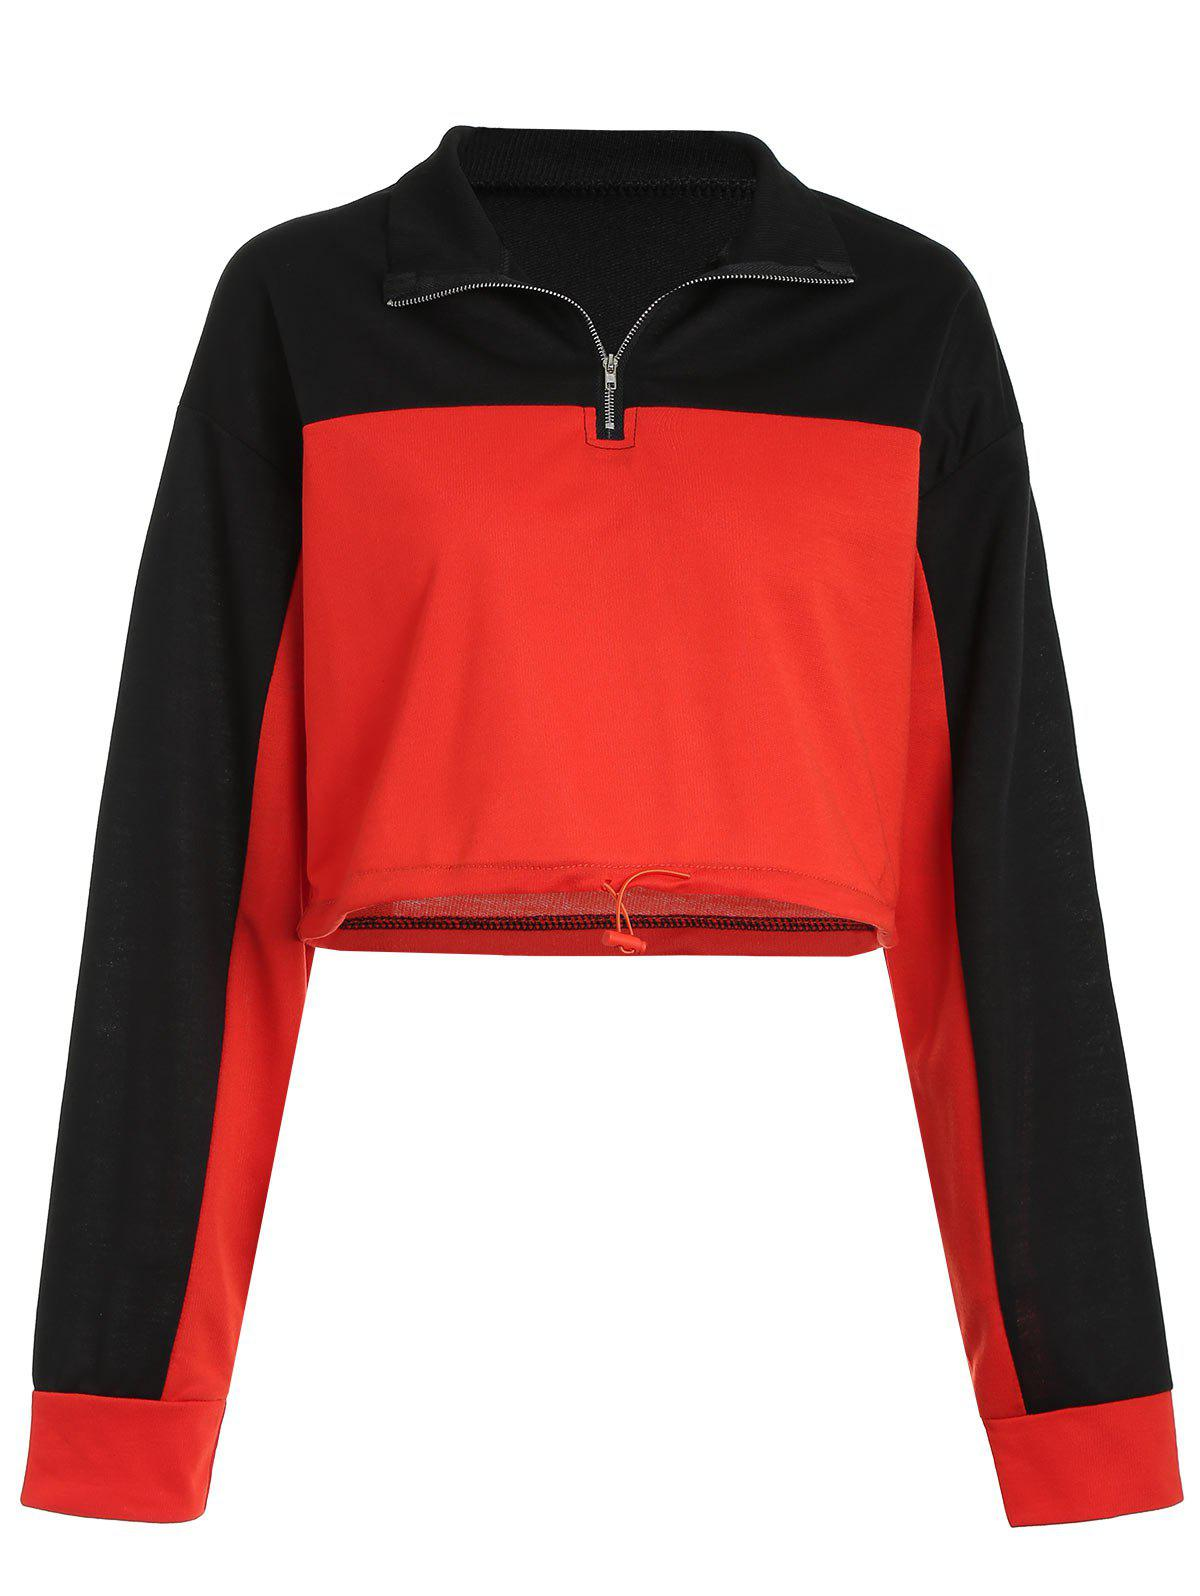 Online Two Tone Short Sweatshirt with Half Zipper